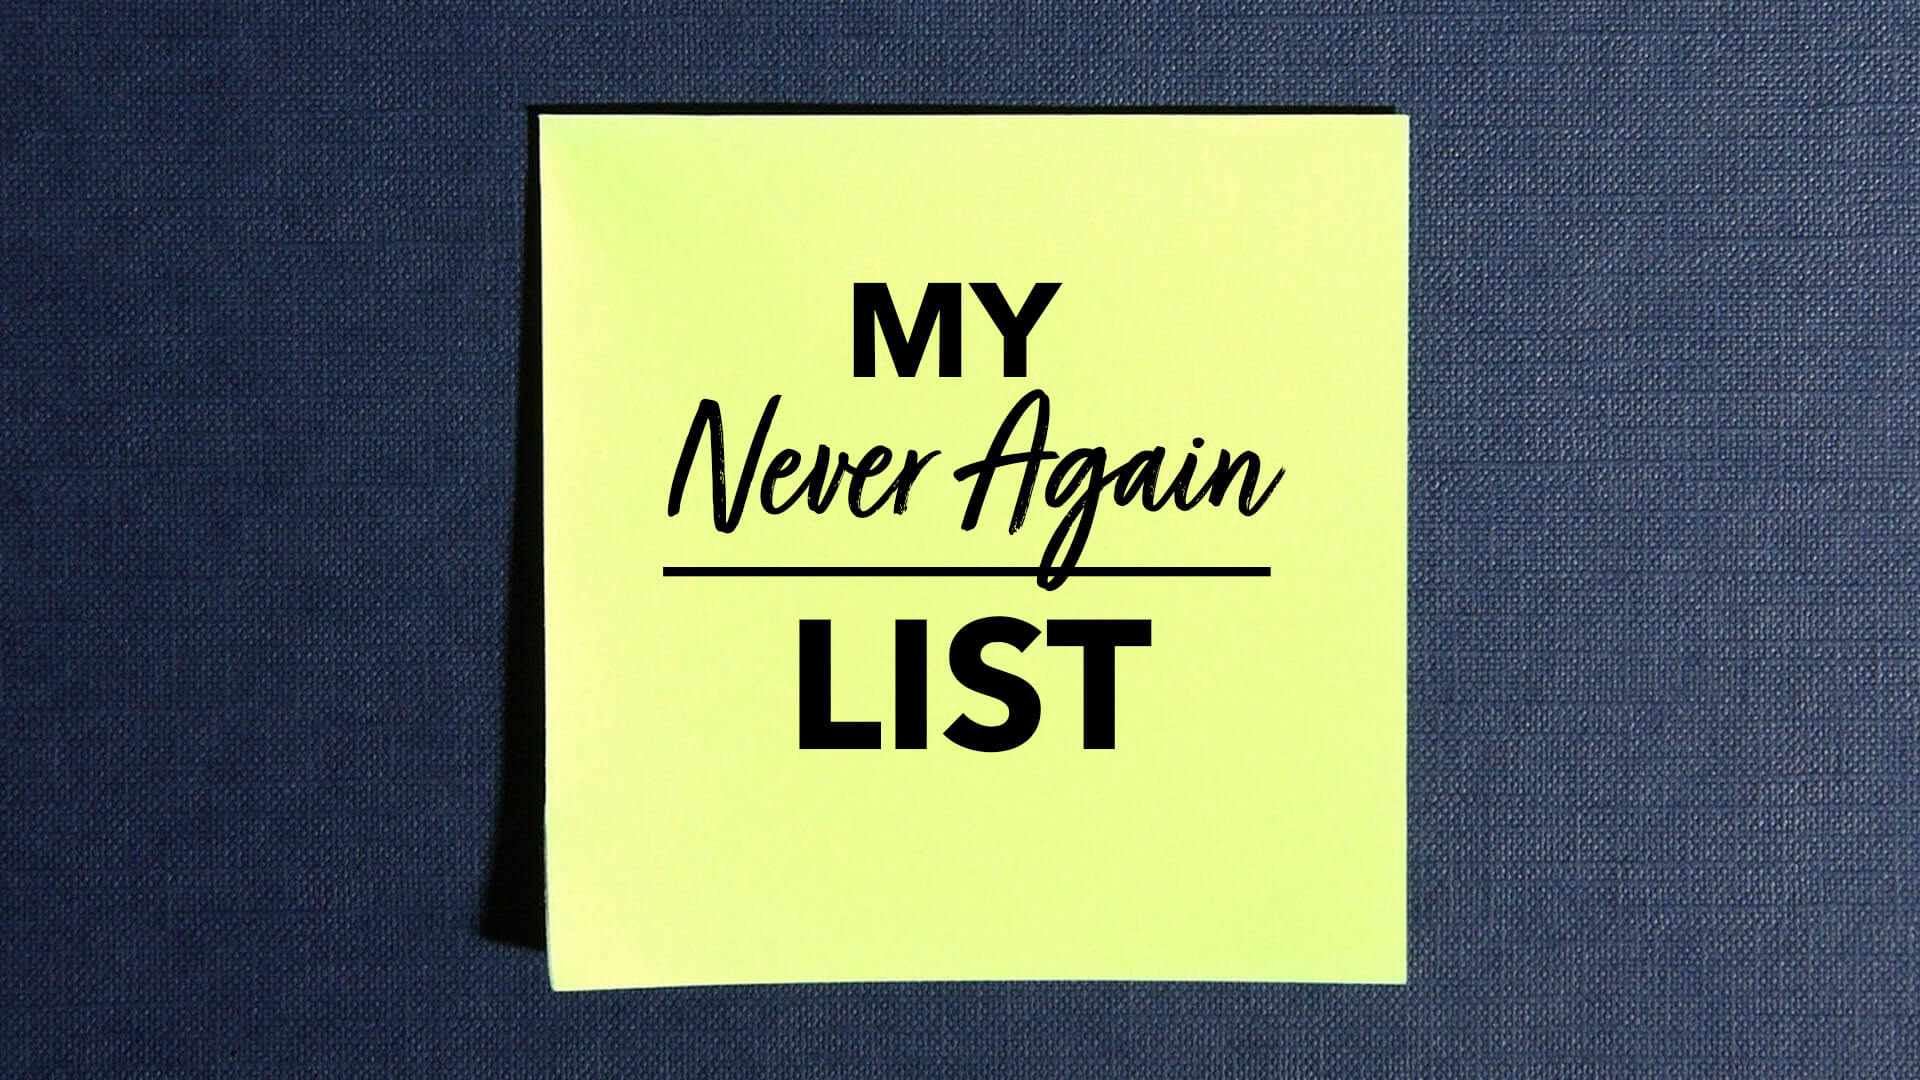 My Never Again List